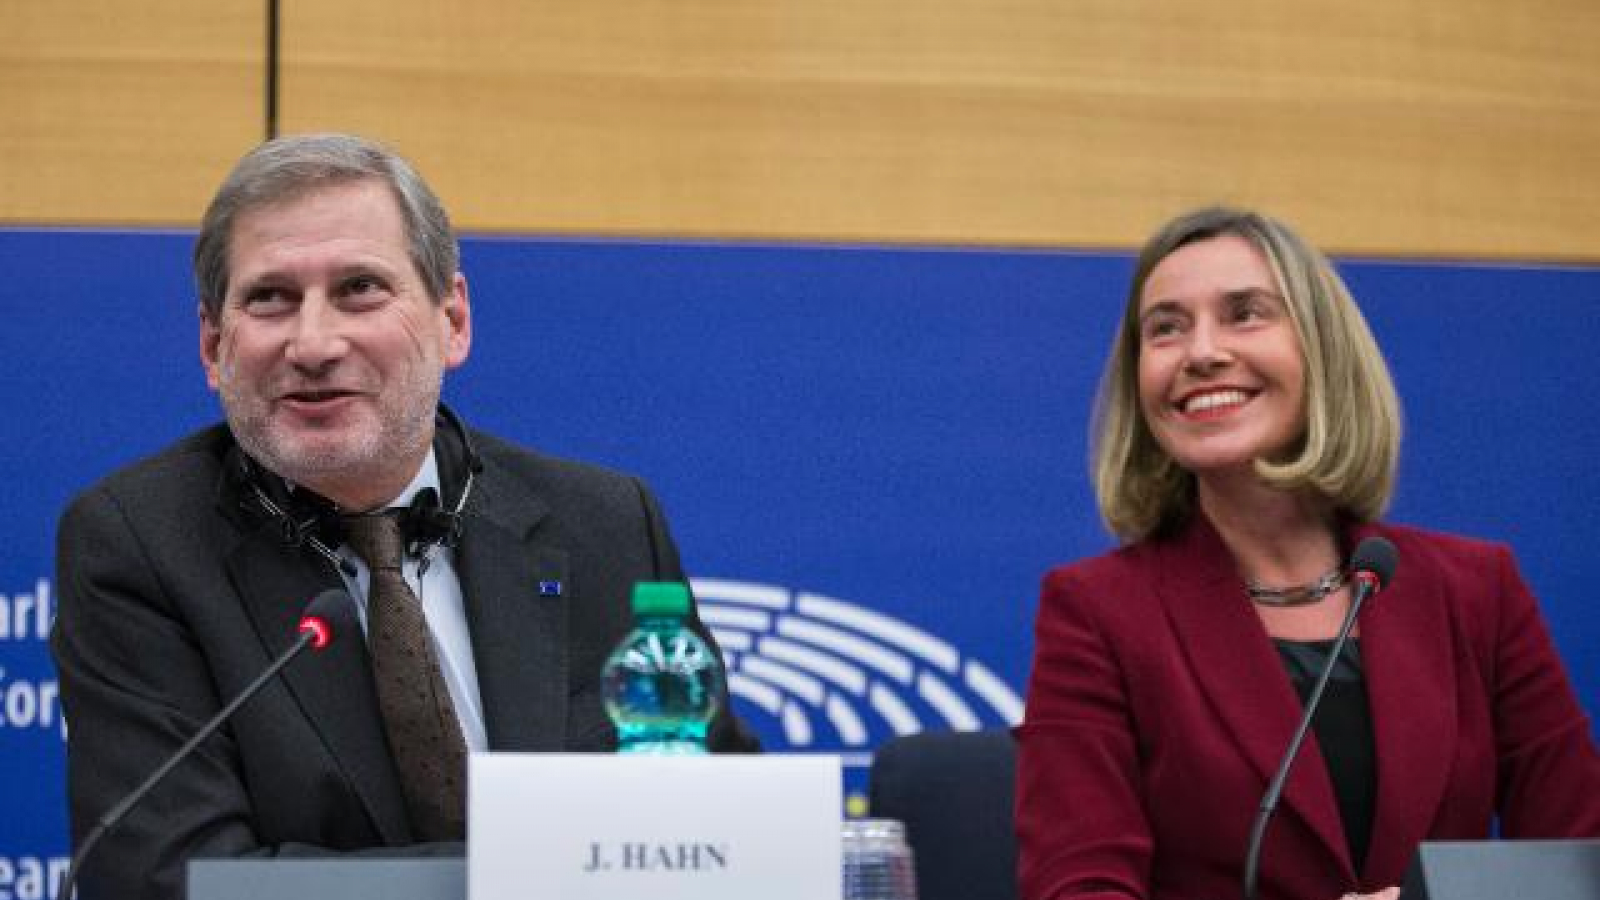 High Representative/Vice-President Mogherini and Commissioner Hahn at the third Regional Forum of the Union for the Mediterranean